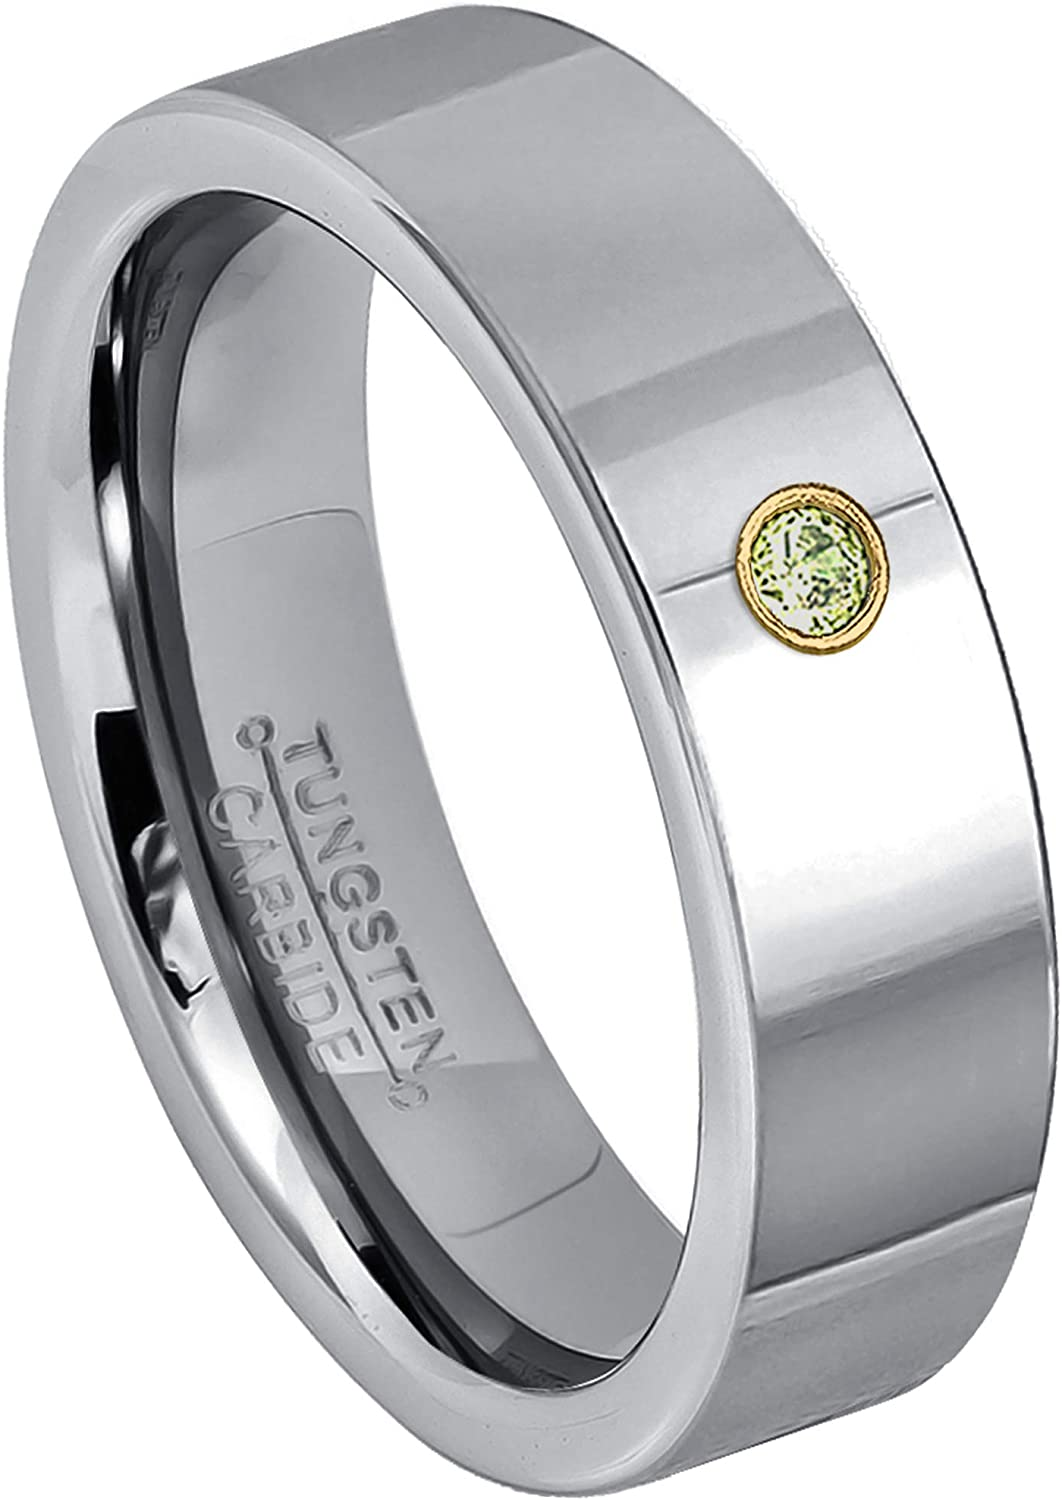 August Birthstone Ring 0.07ct Peridot Solitaire Ring Jewelry Avalanche 8mm Pipe Cut Black Tungsten Wedding Band